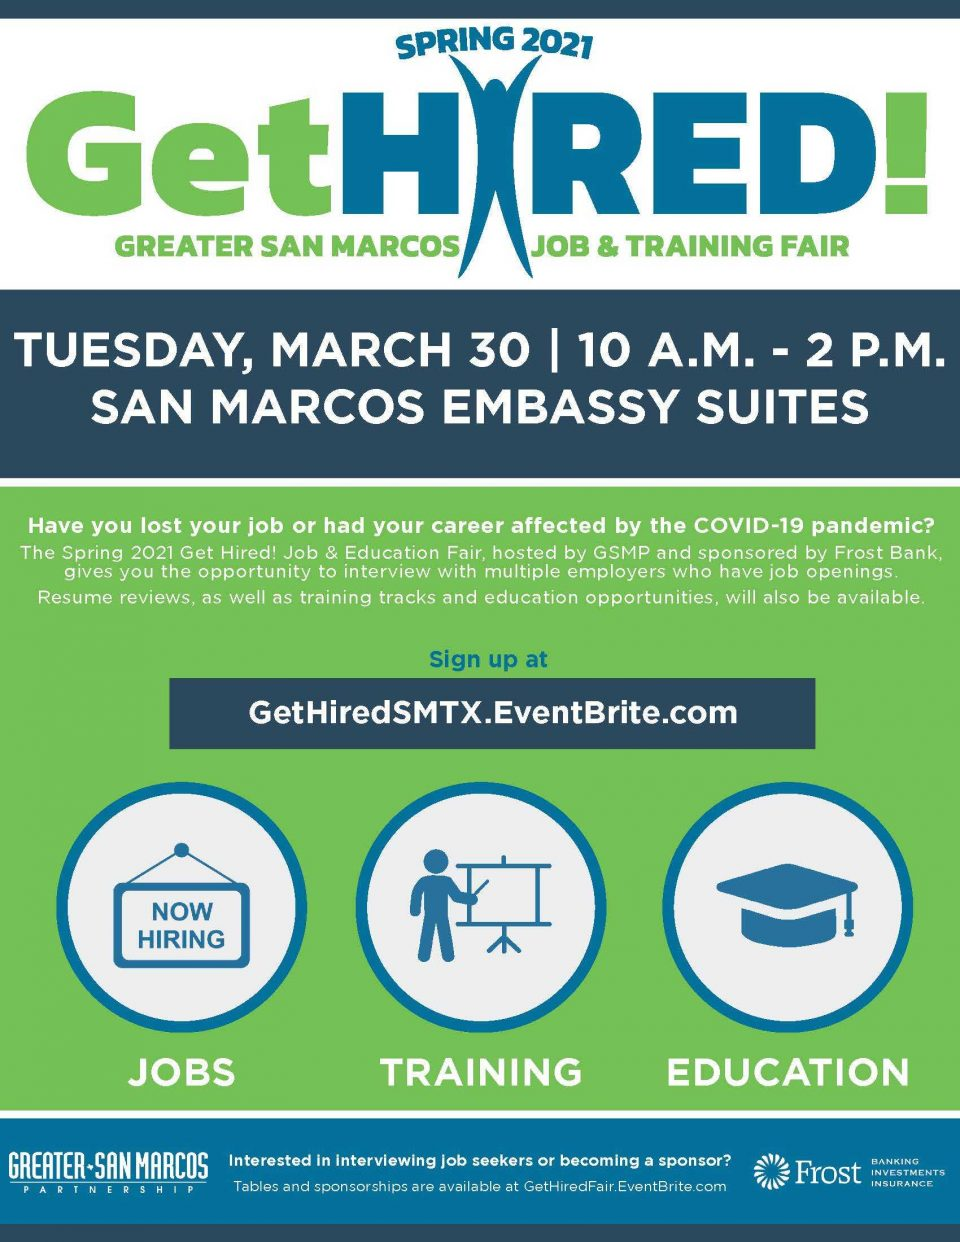 Greater San Marcos Partnership Hosting Spring 2021 Get Hired! Job & Education Fair on March 30